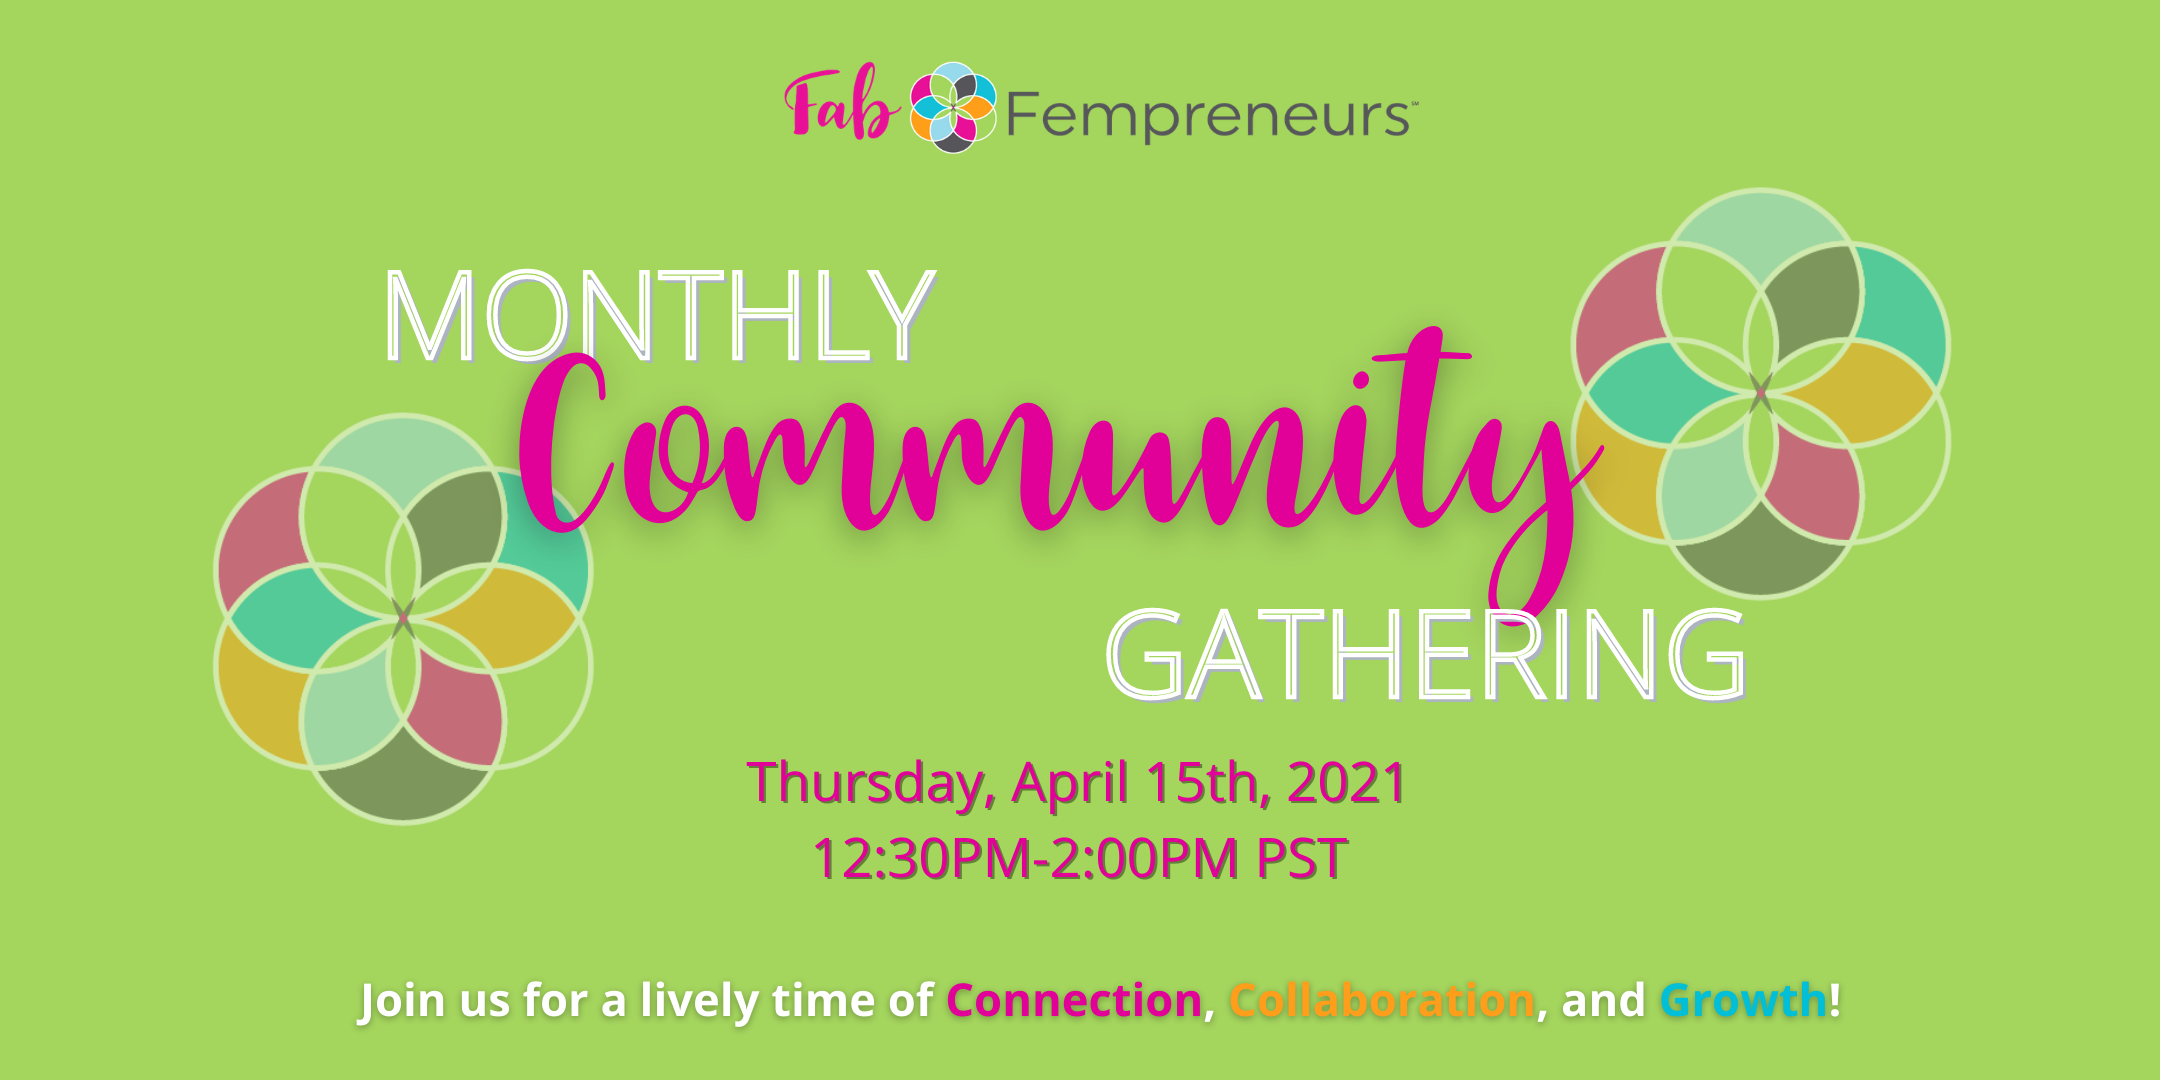 free virtual networking event for women